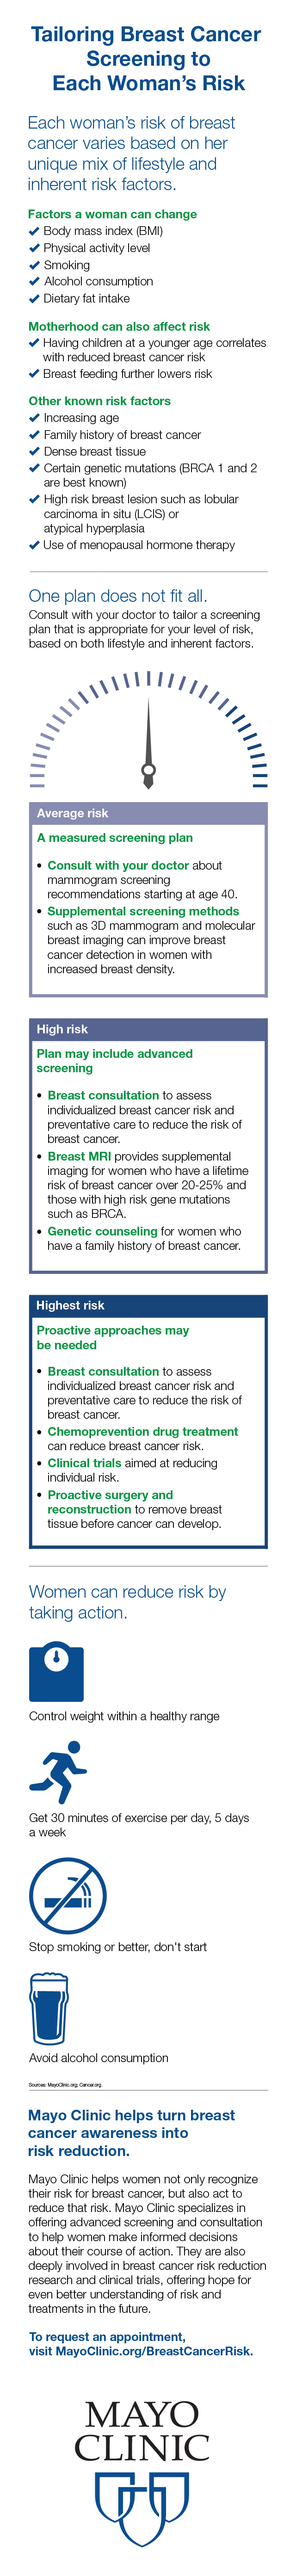 medical infographic for breast cancer risk and treatment